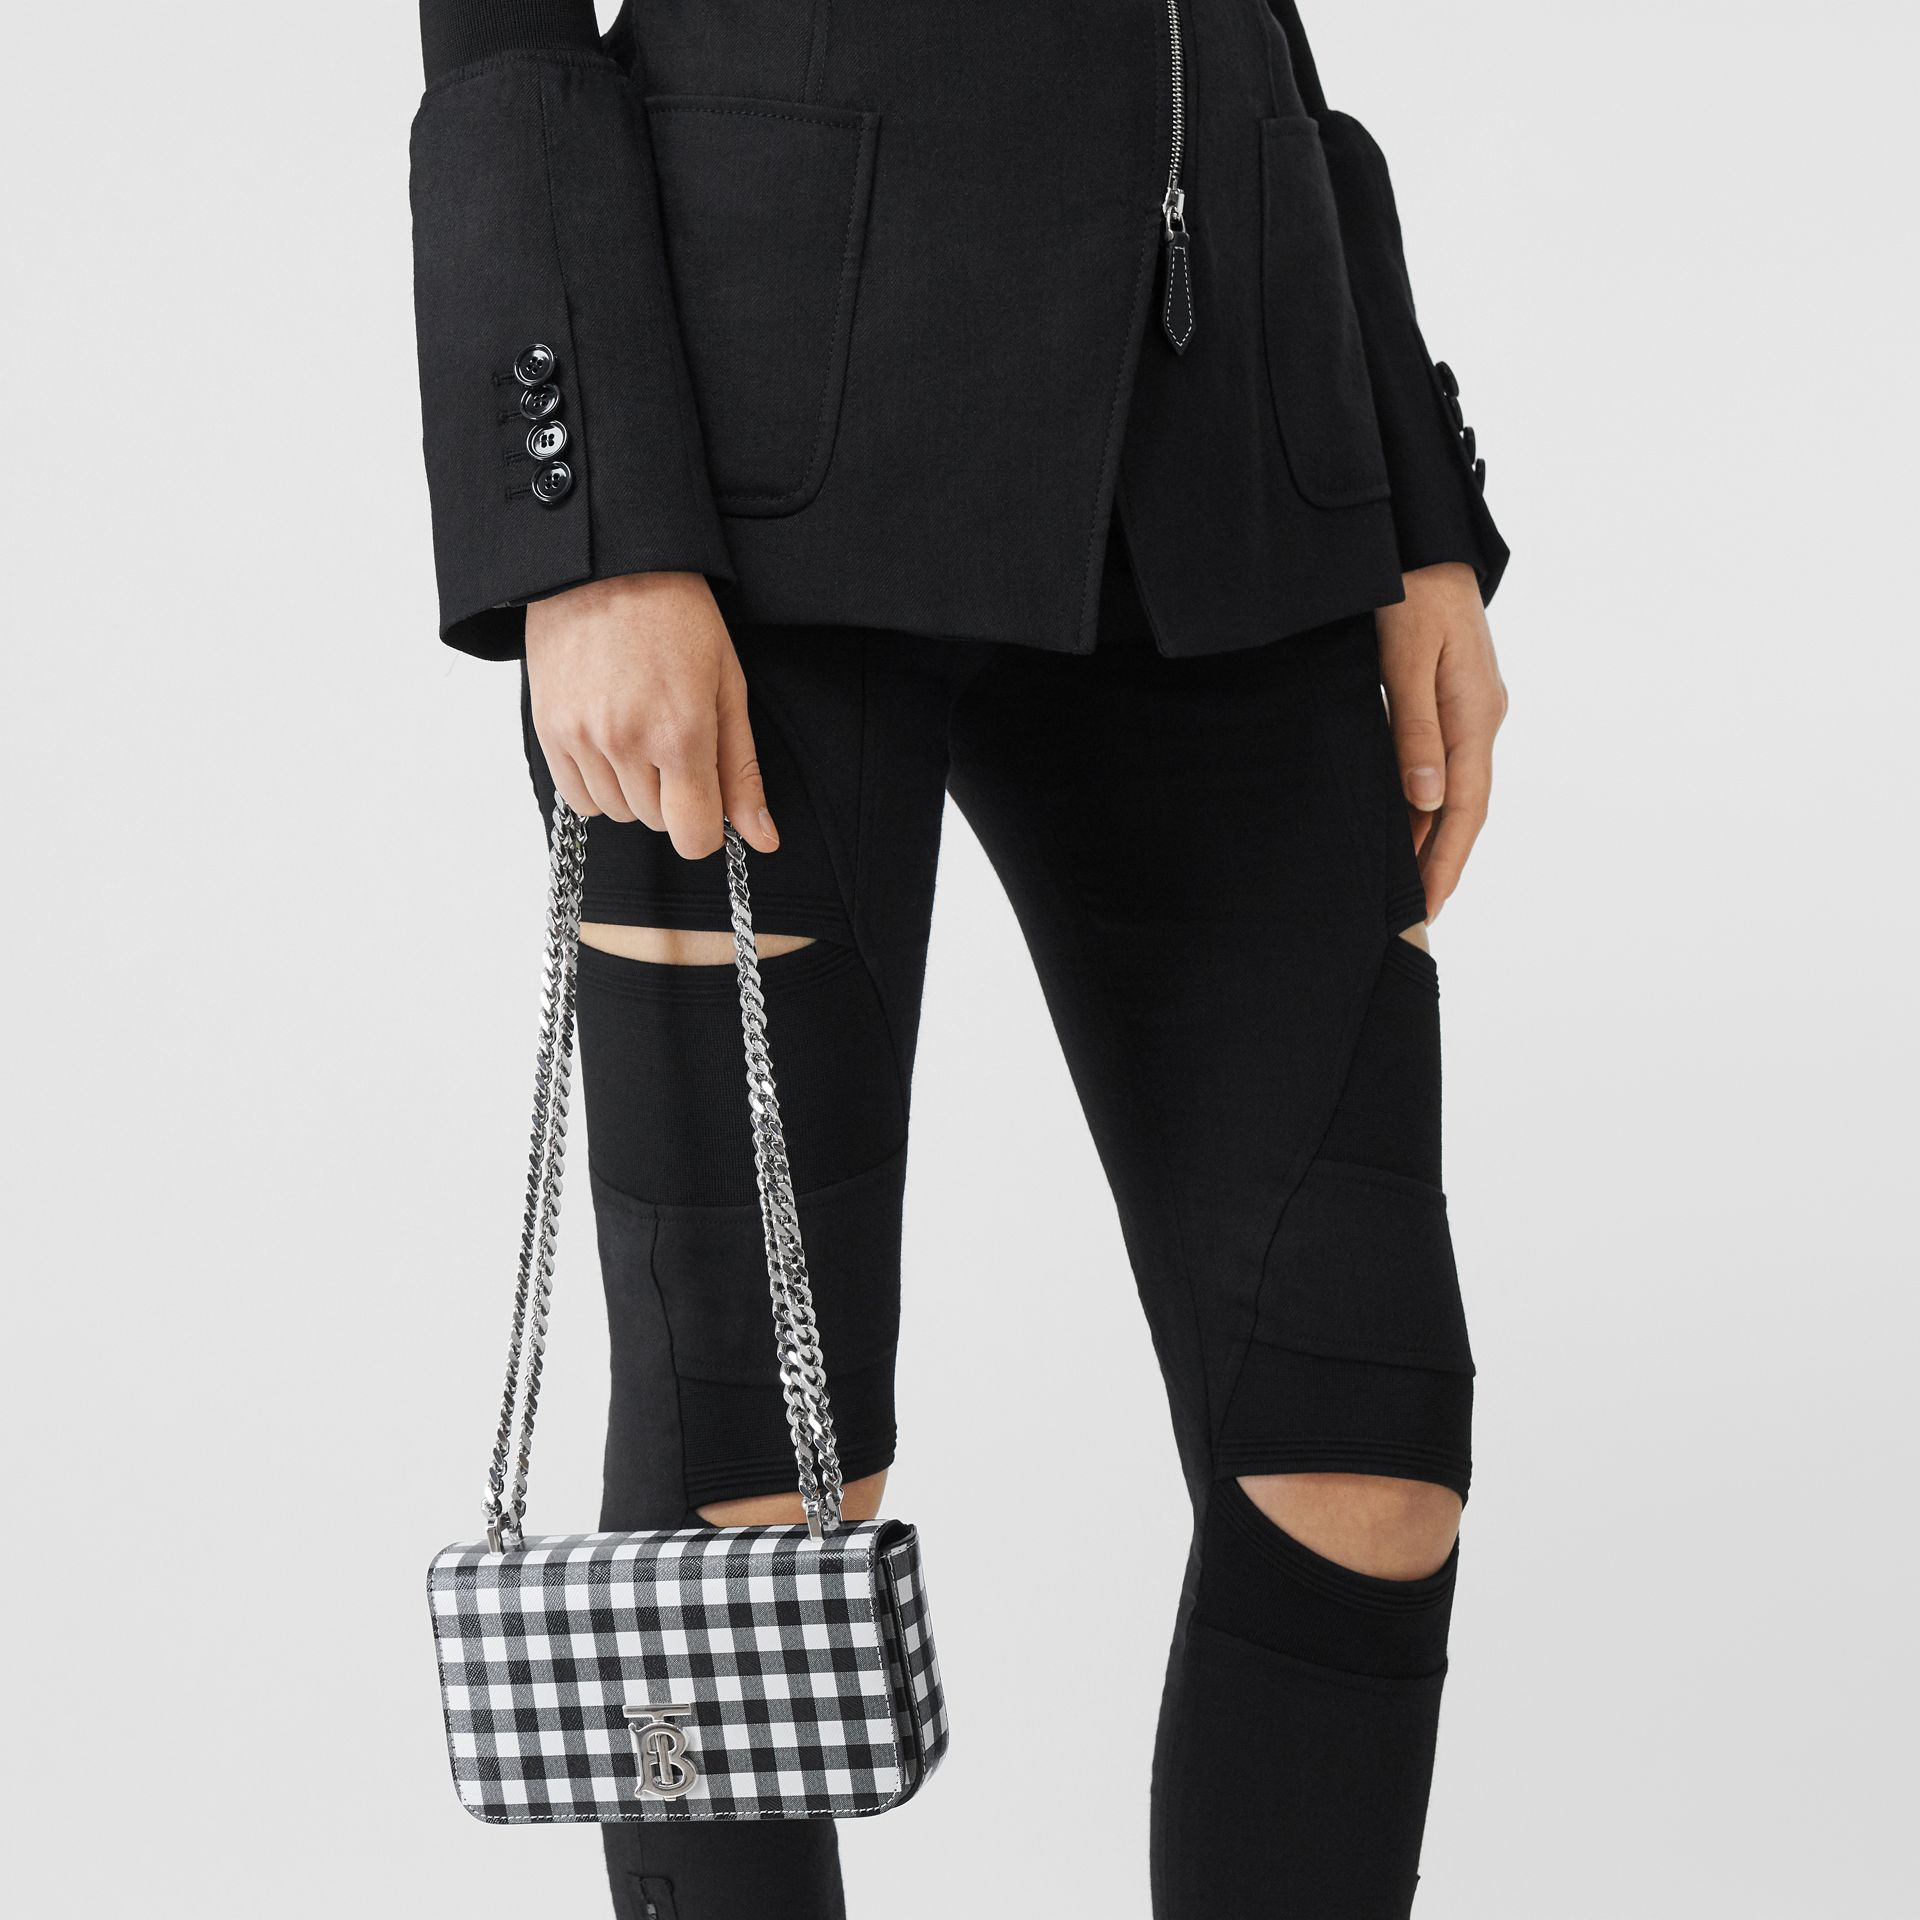 Mini Gingham Leather Lola Bag in Black/white - Women | Burberry - gallery image 8